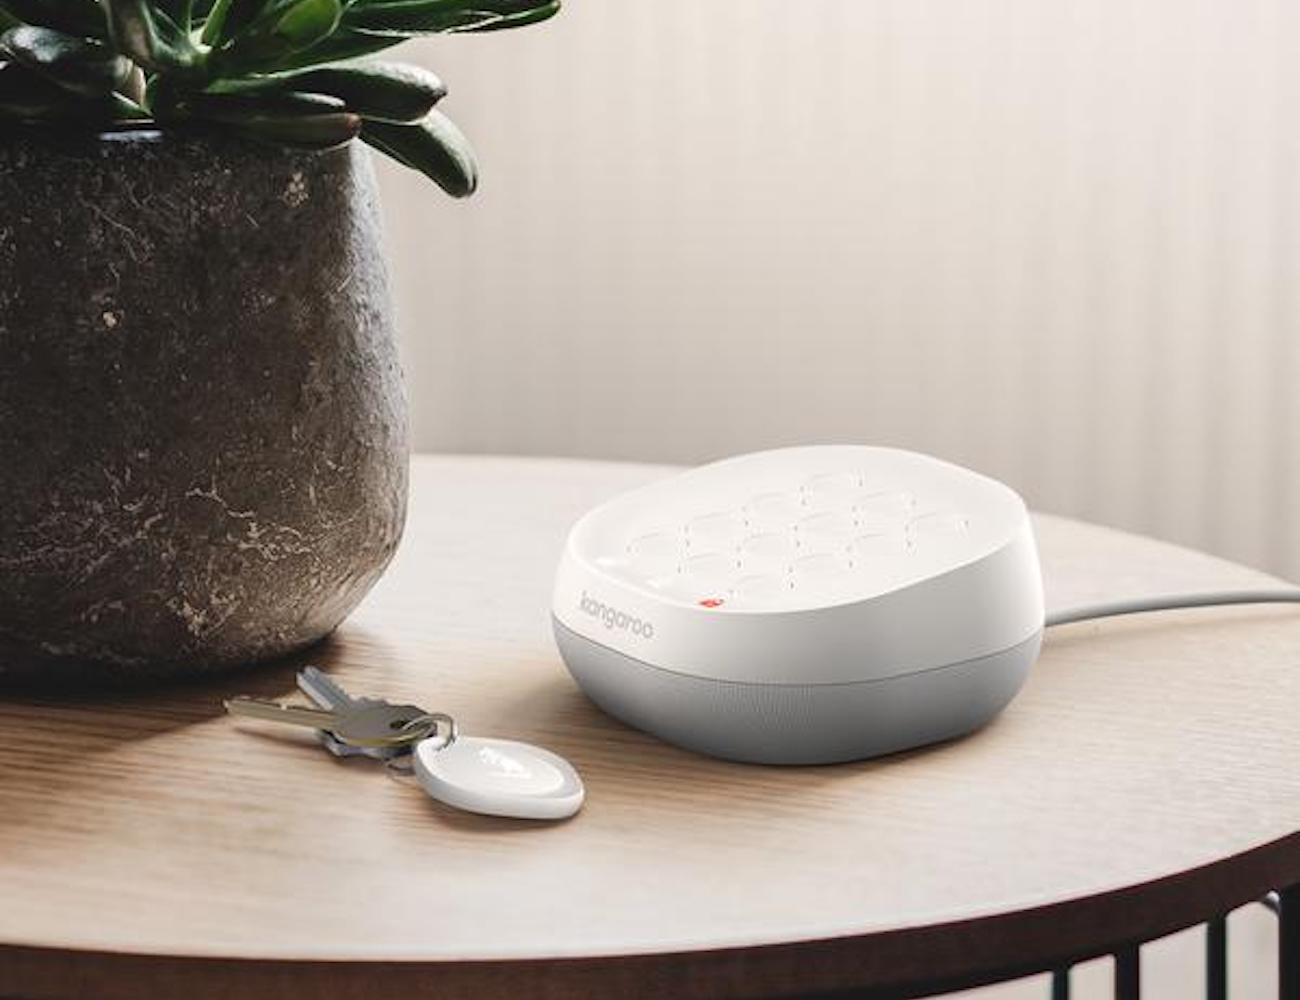 The smartest smart home devices we've seen so far in 2019